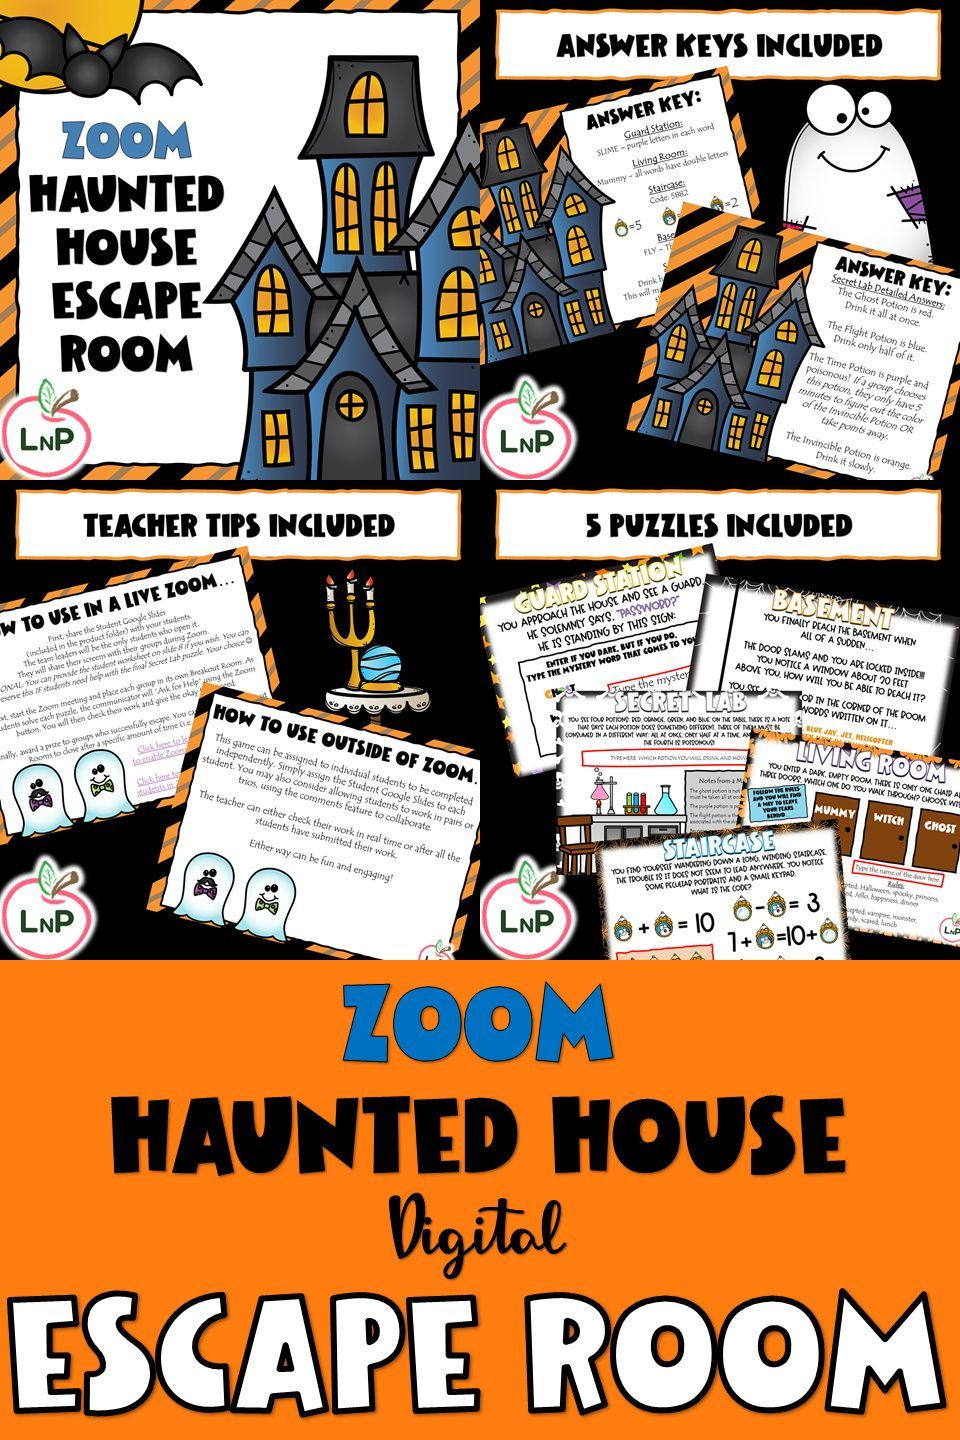 Halloween Haunted House Escape Room Logic Puzzles And Games For Zoom Halloween Activities For Kids Math Center Activities Halloween Class Party